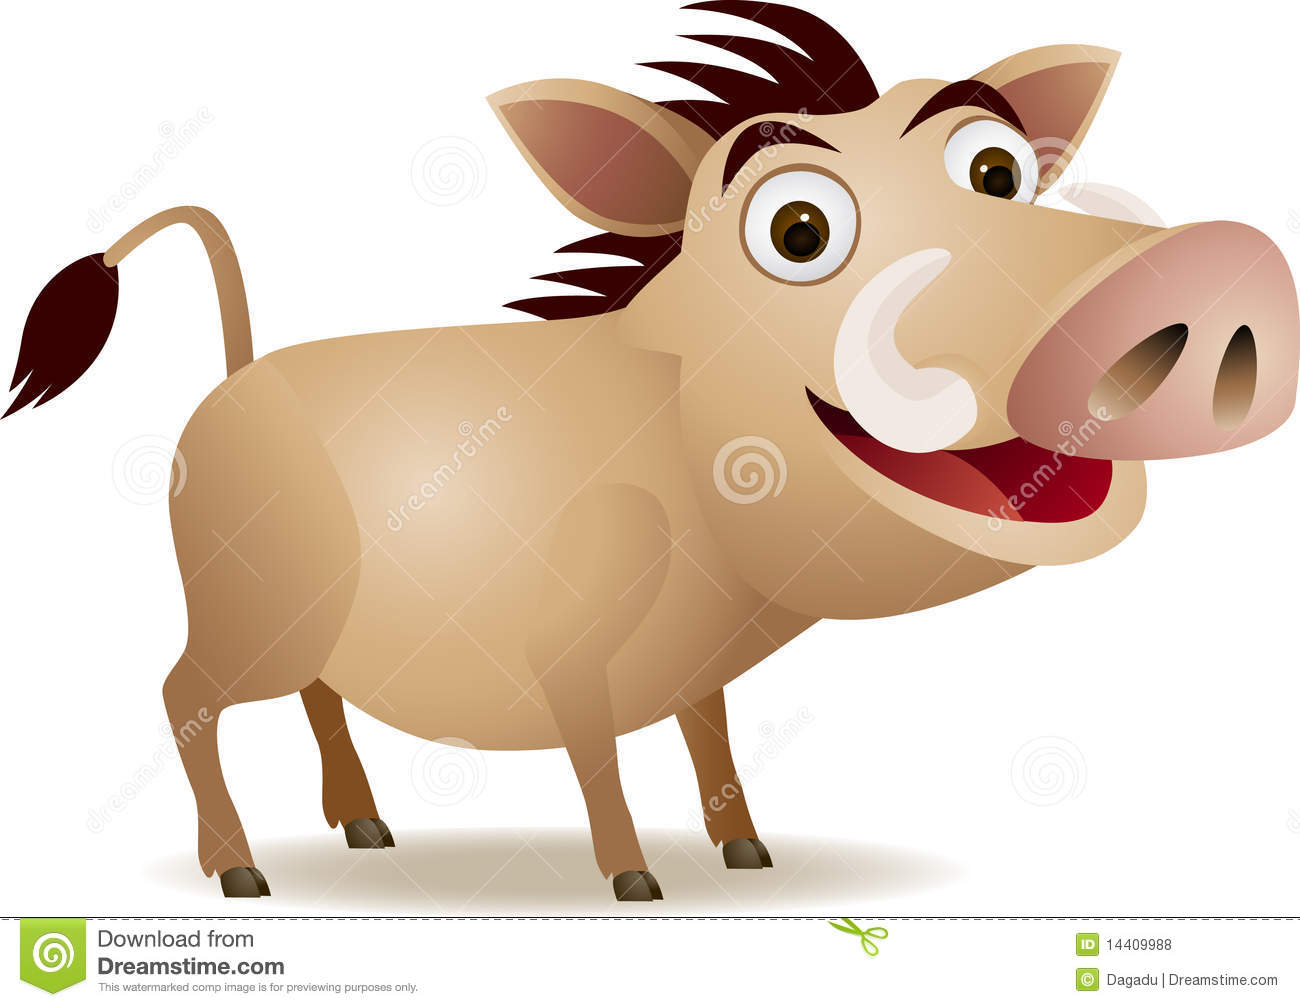 Warthog clipart #14, Download drawings